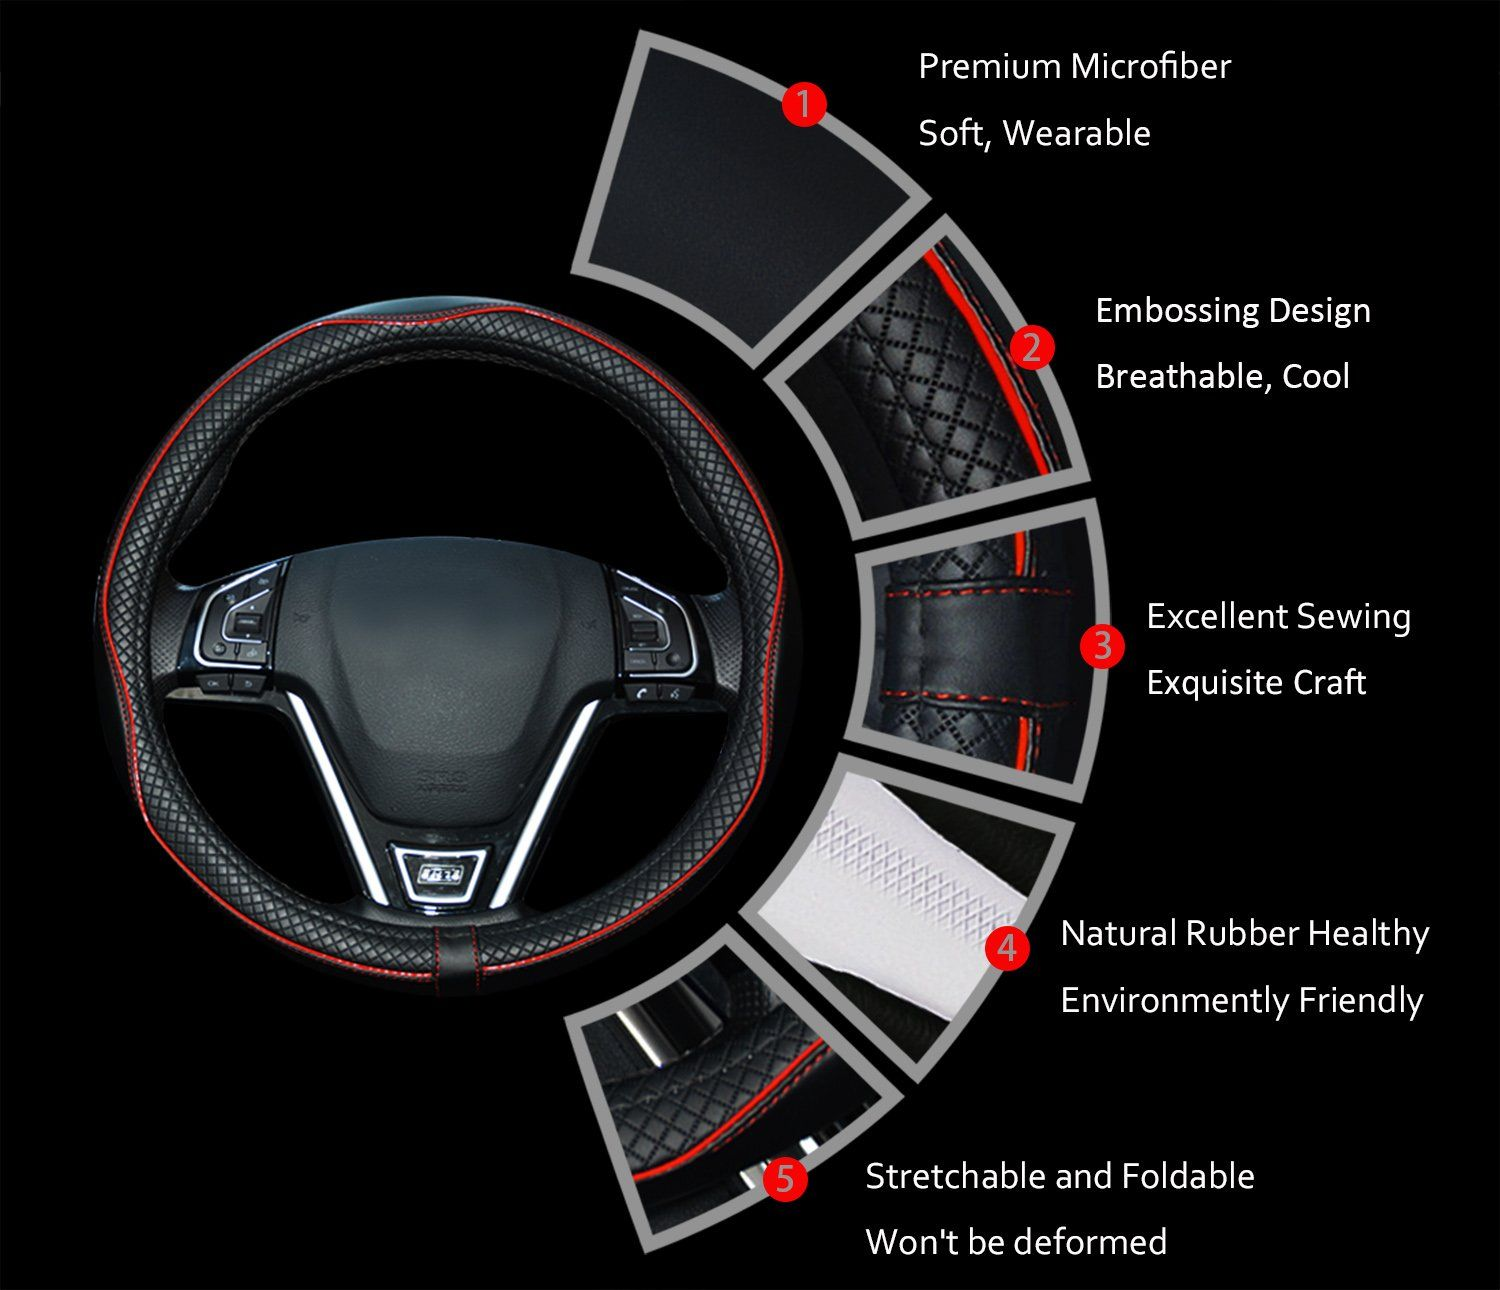 Universal 15 Inch Steering Cover Rueesh Microfiber Leather Car Steering Wheel Cover Soft Padding Black with Red Line No Smell Durable Anti-slip Embossing Pattern A